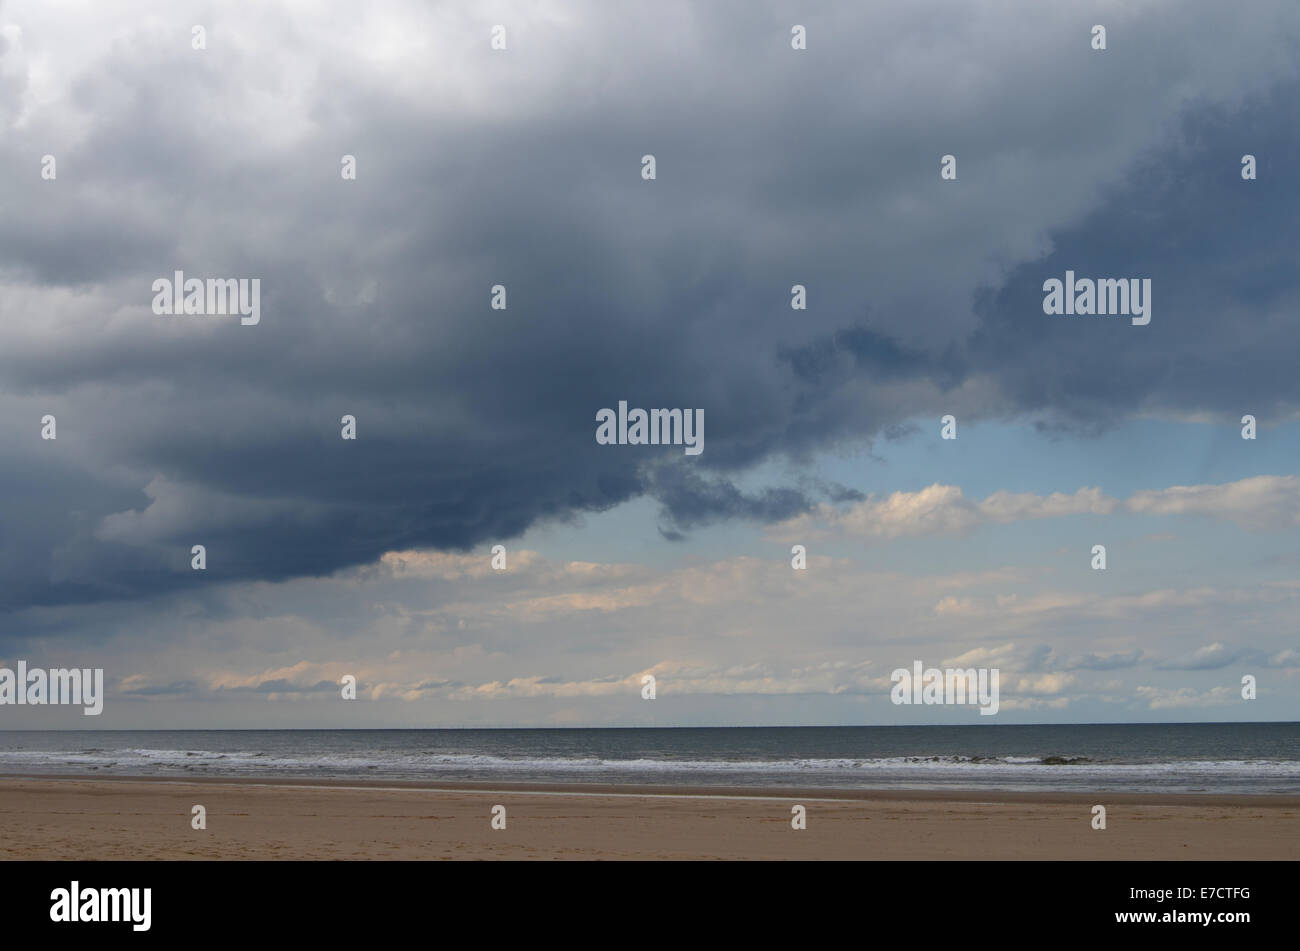 Holkham Bay, East Anglia Aug 2014 UK - Stock Image